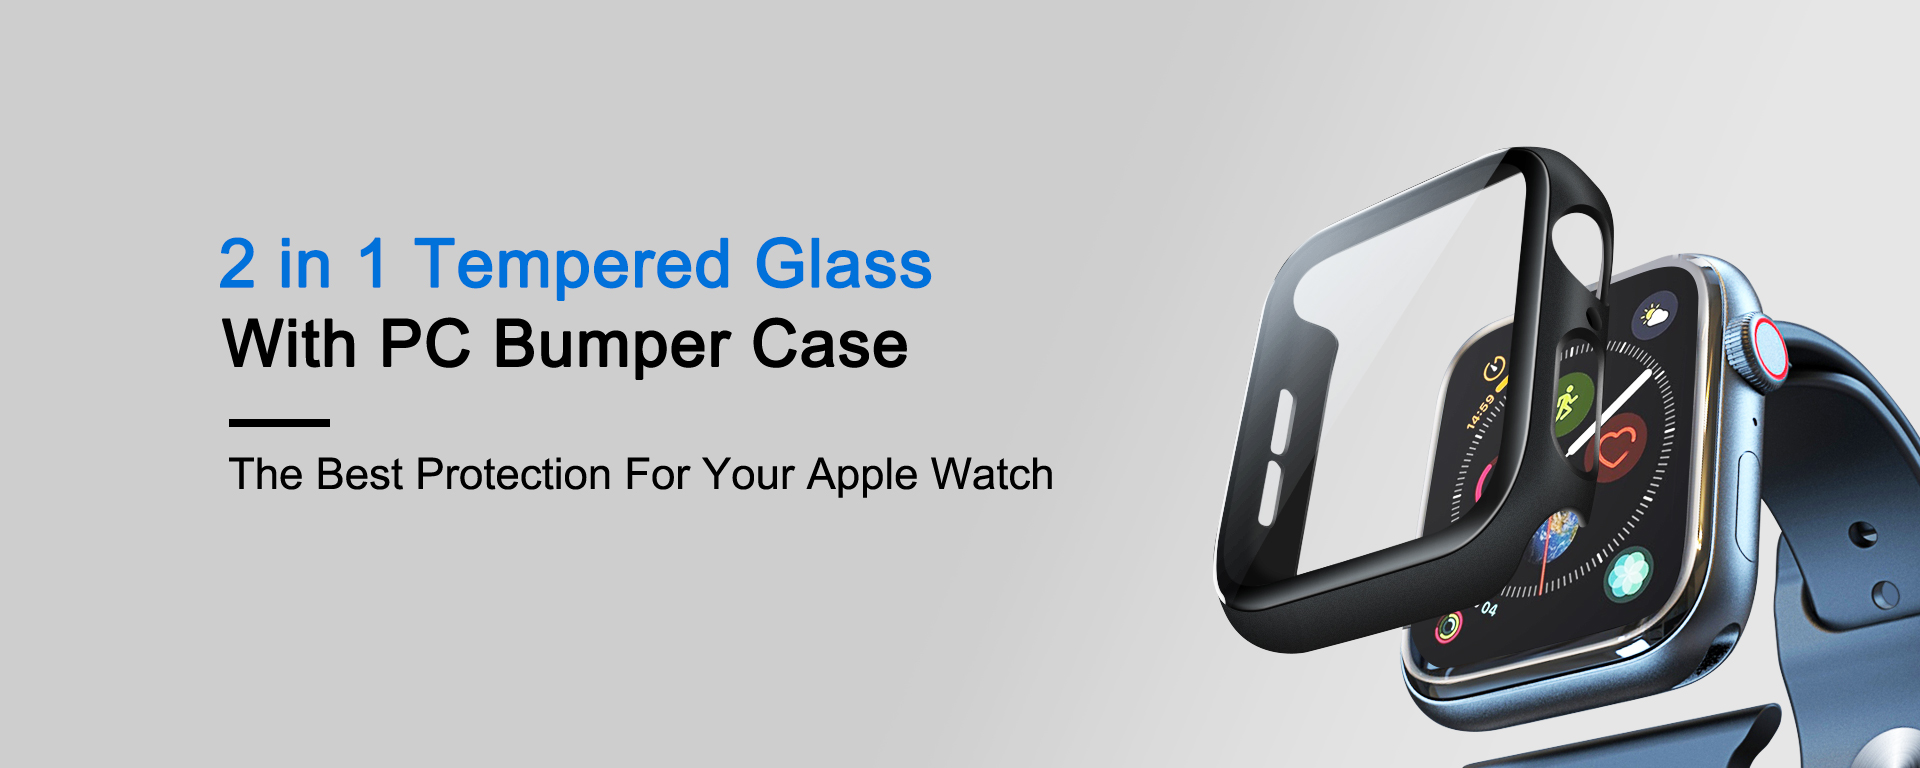 2 in 1 full coverage tempered glass screen protector with pc bumper for apple watch